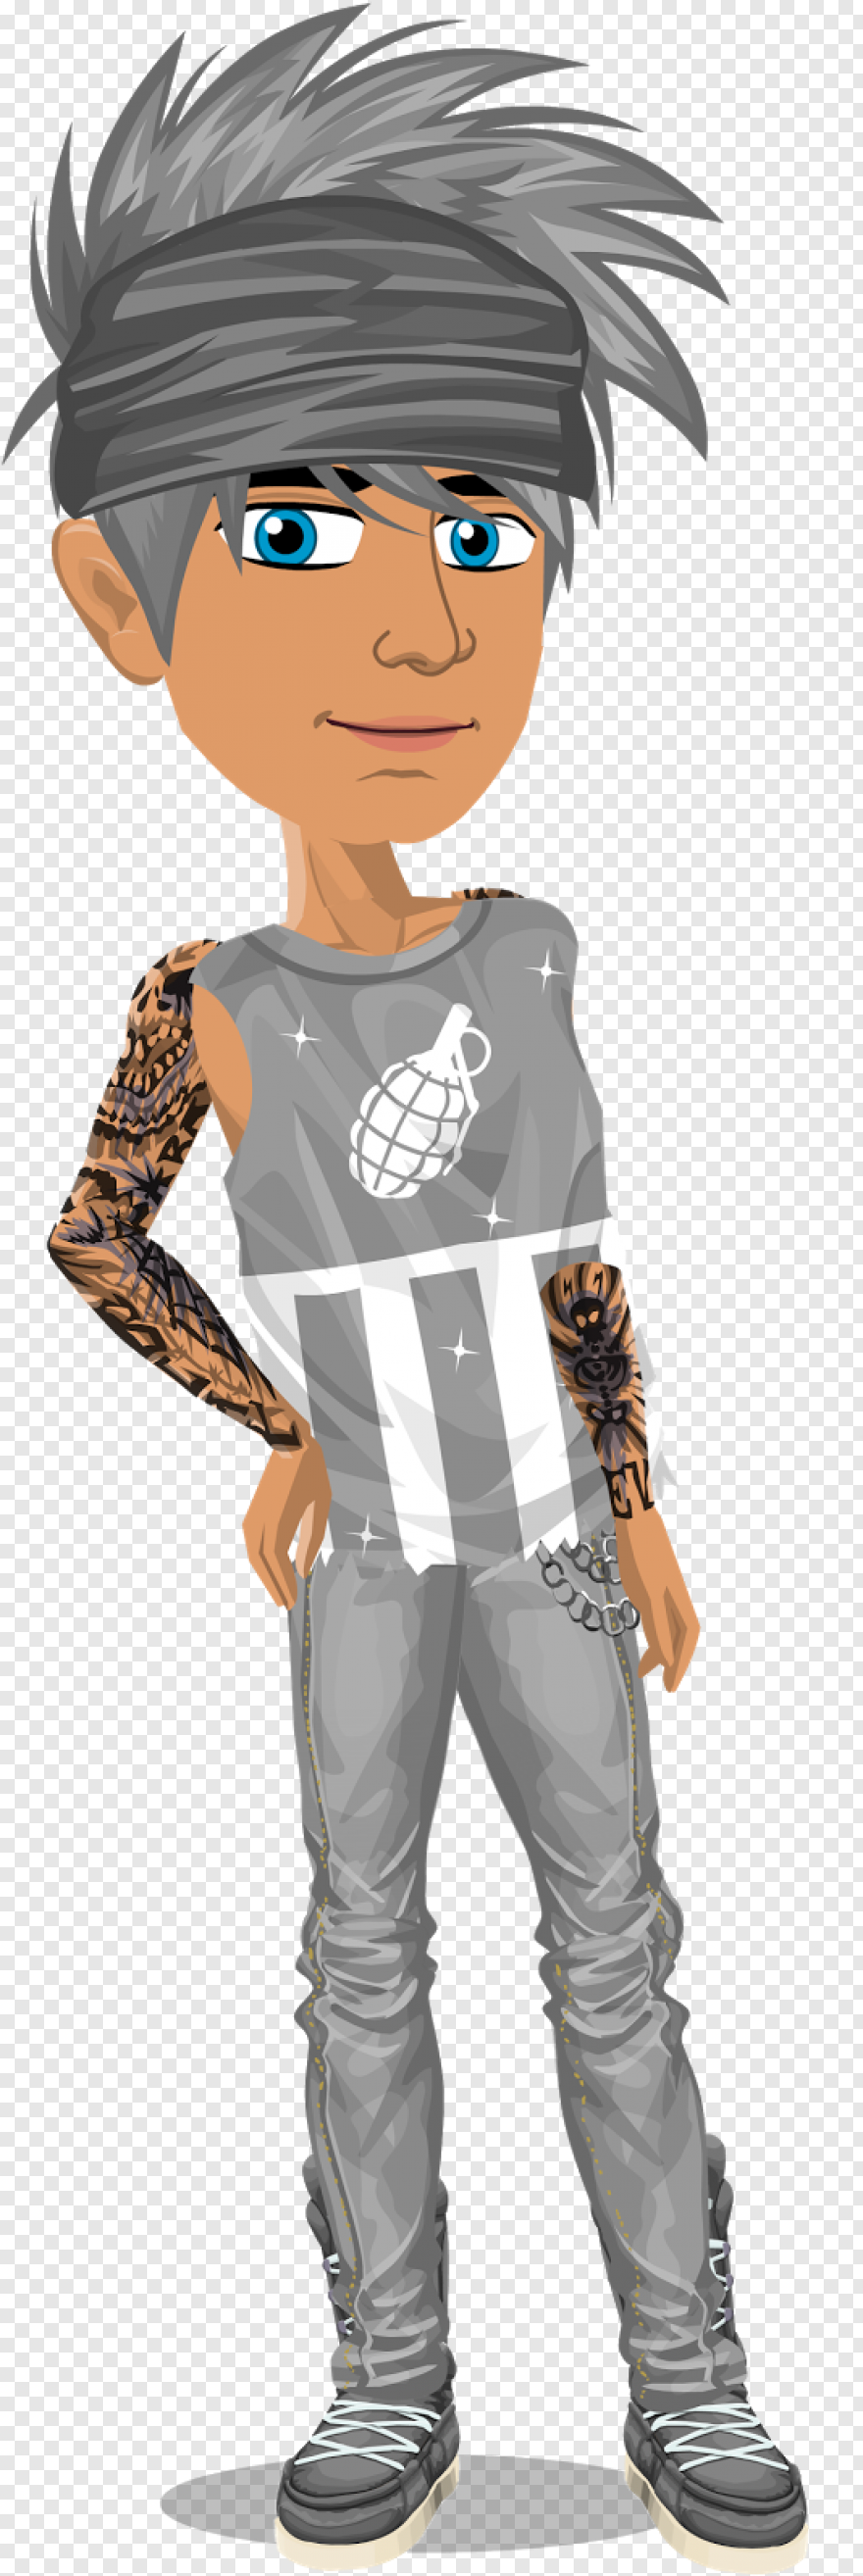 Msp - Msp Boy Looks, HD Png Download